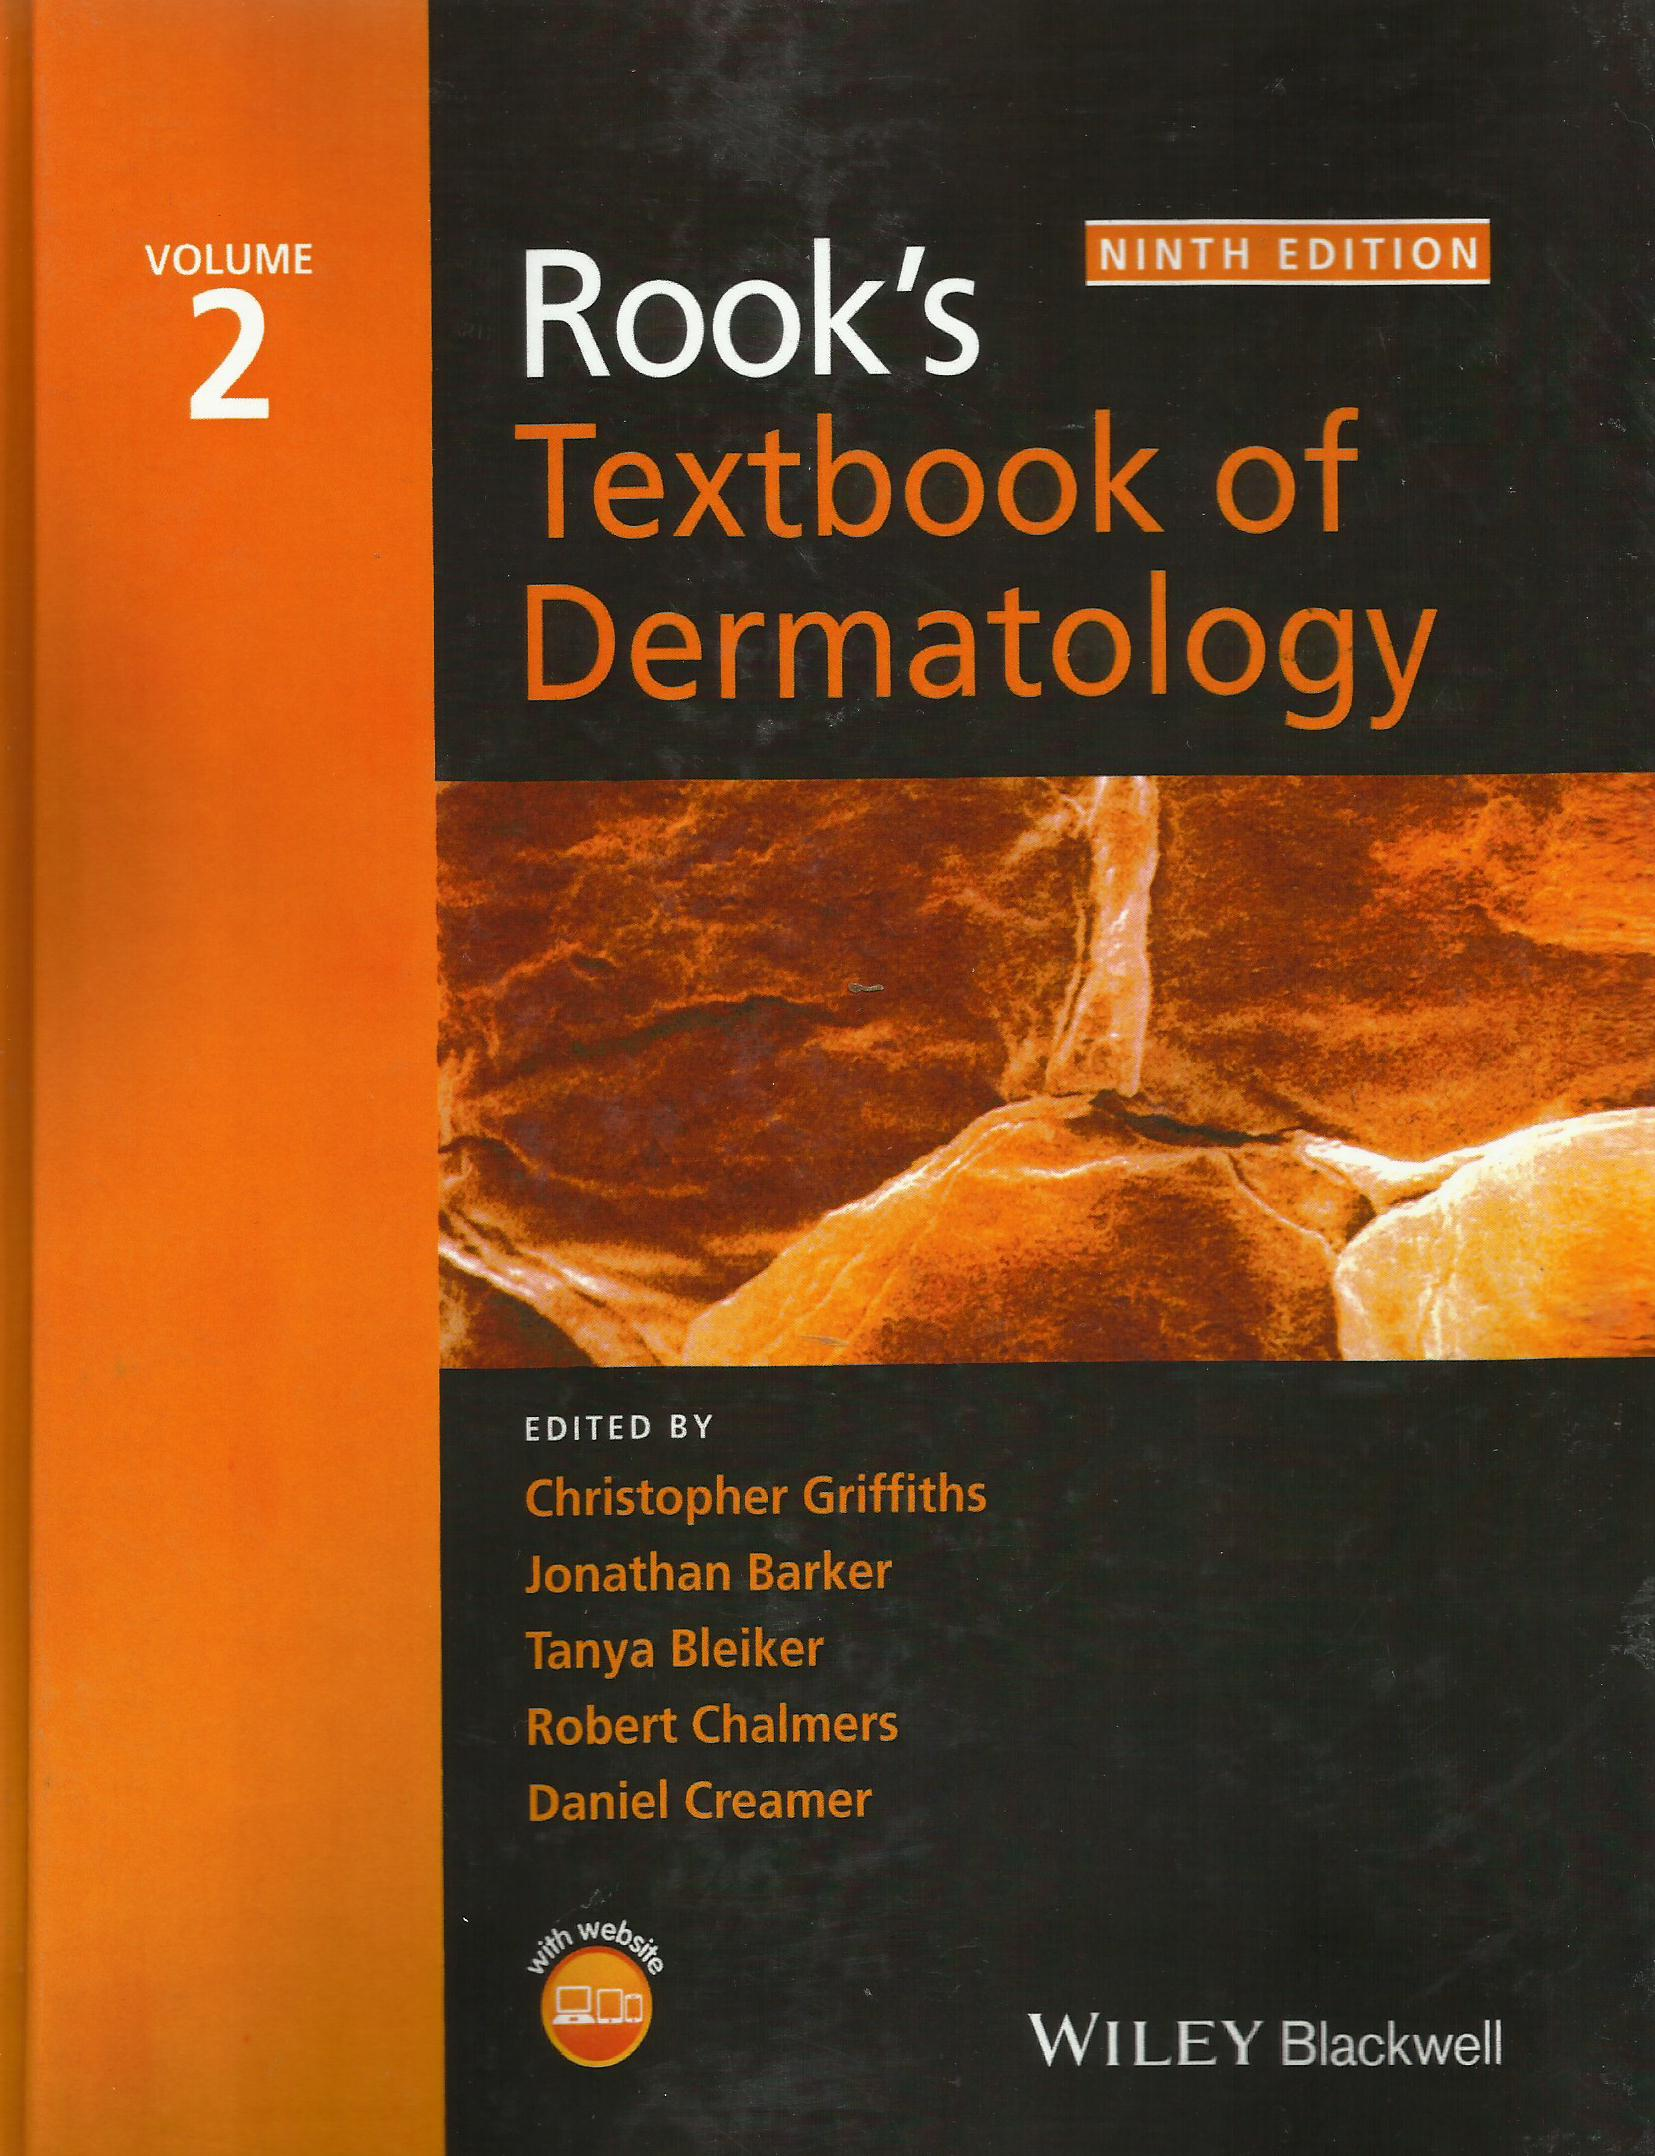 Rook's Textbook of Dermatology vol.2